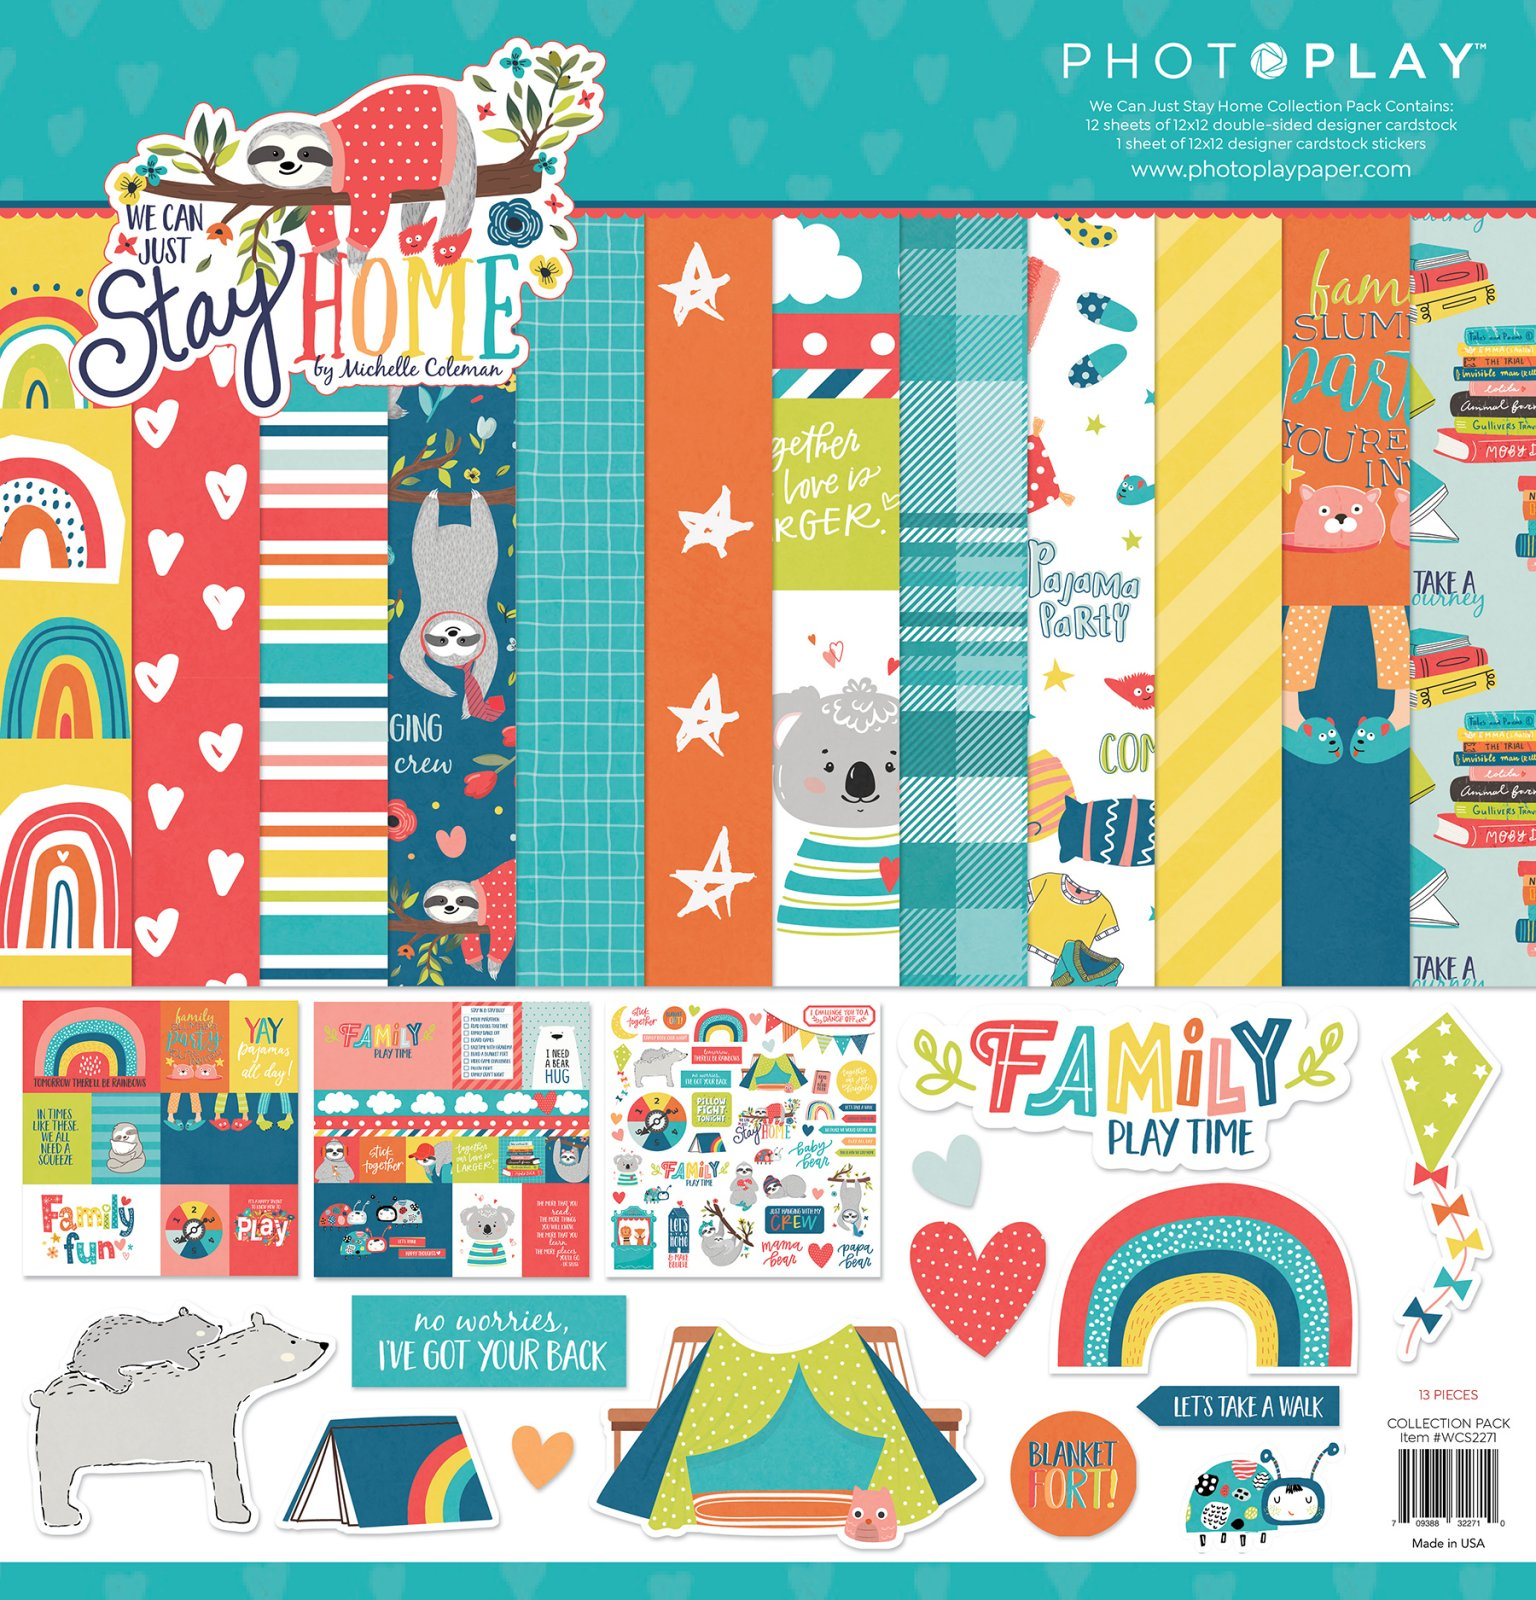 Photoplay We Can Just Stay Home - 12x12 Collection Pack